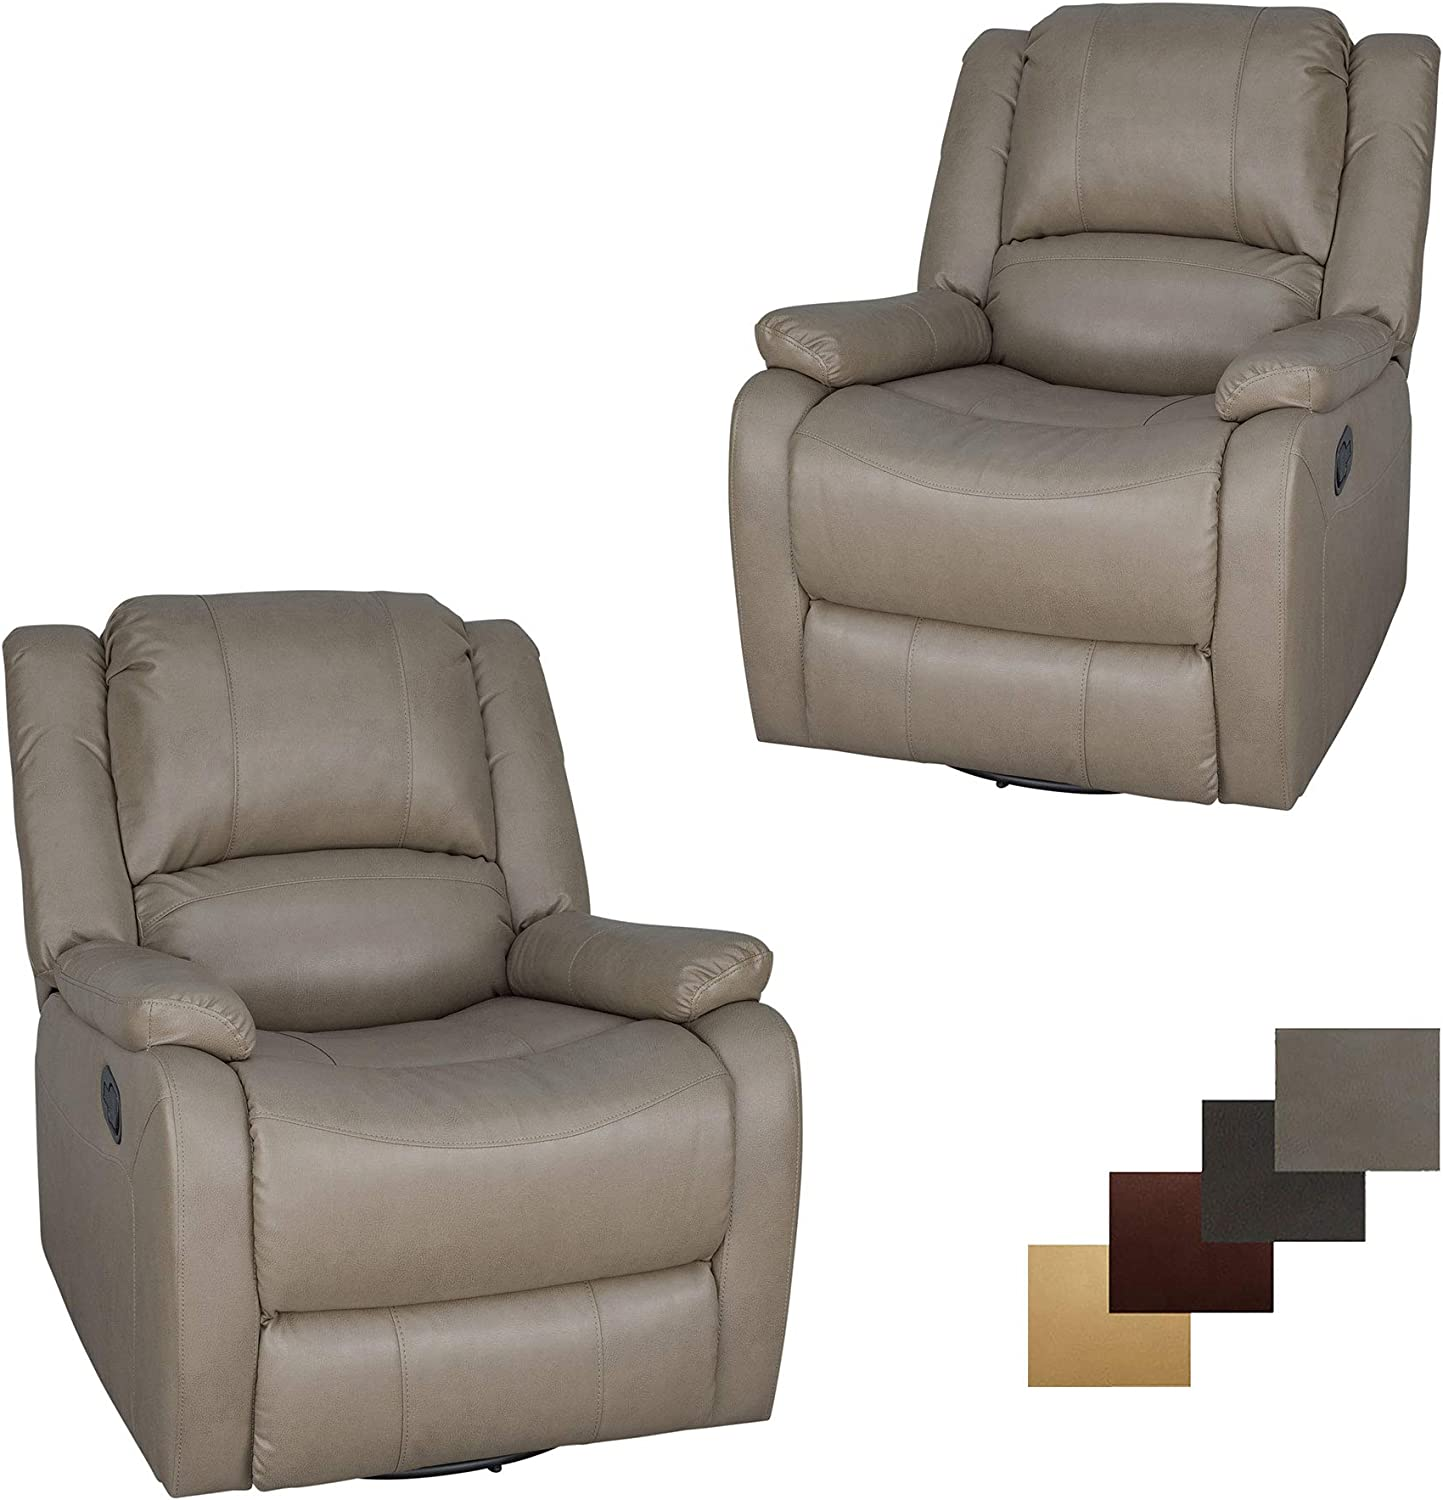 Best RV Recliners of 2020 – Relaxation Station Buyer's Guide